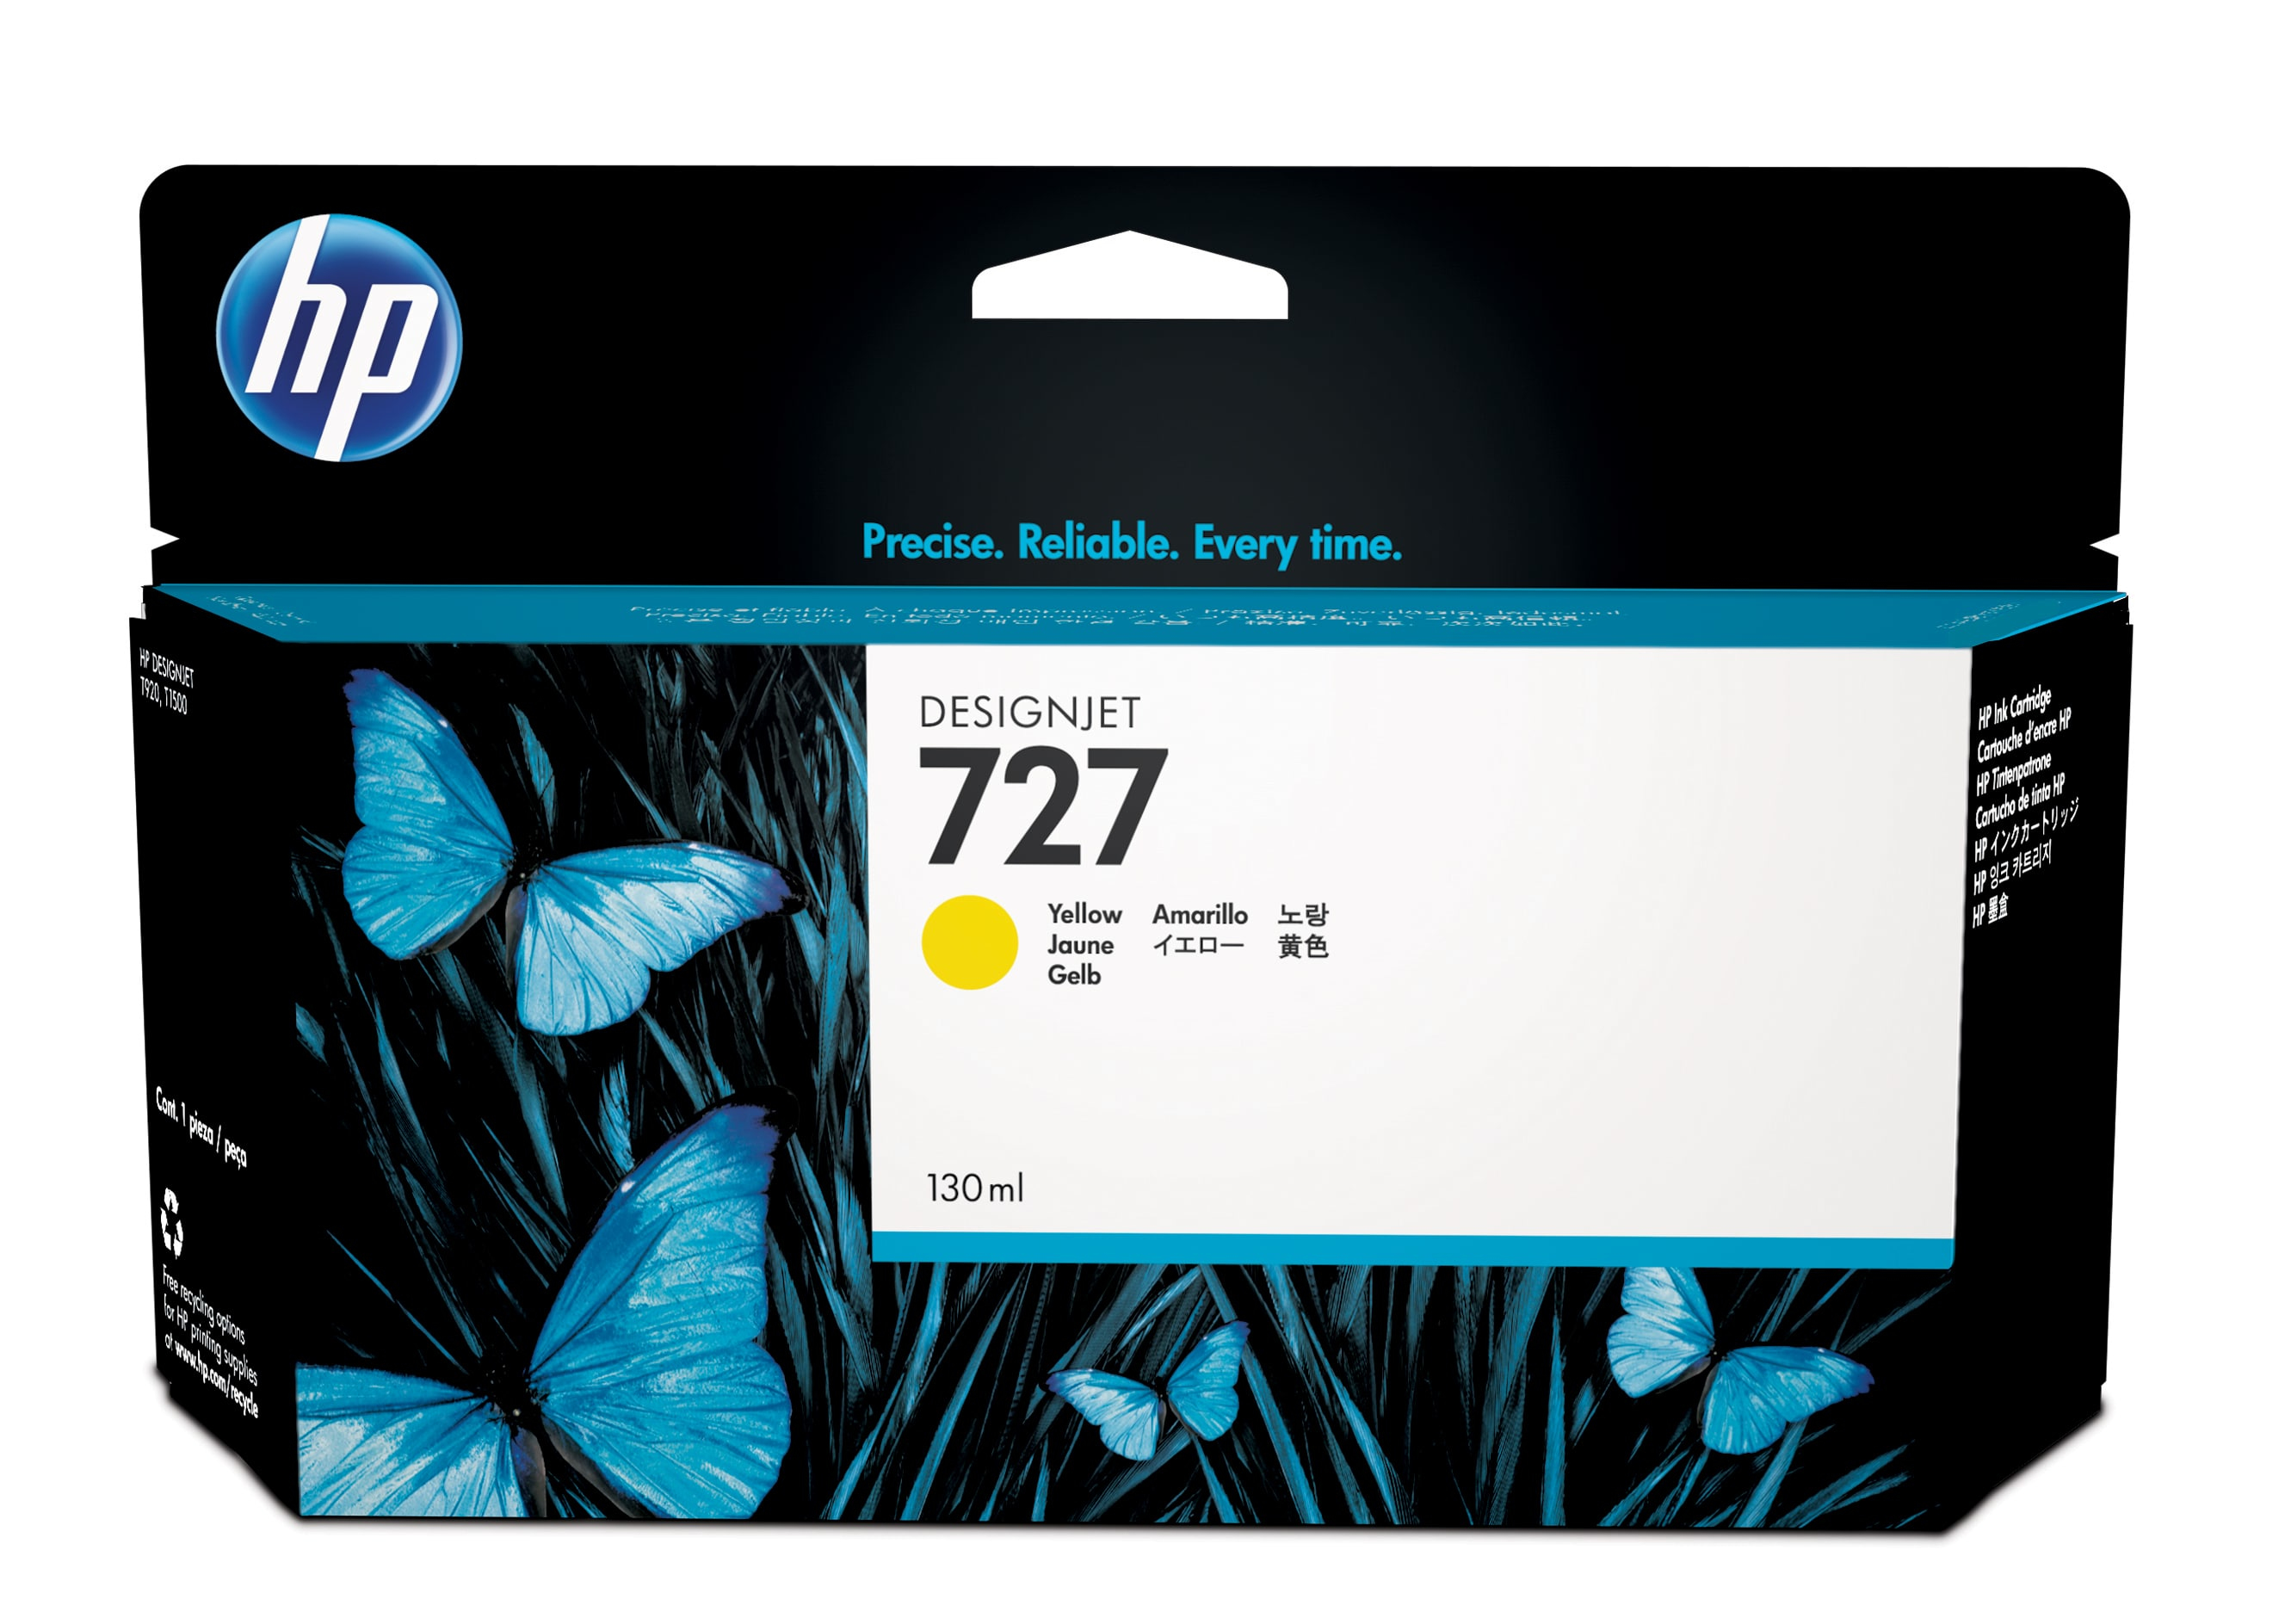 Hpb3p21a       Hp 727 130ml Yellow Ink        Cartridge                                                    - UF01